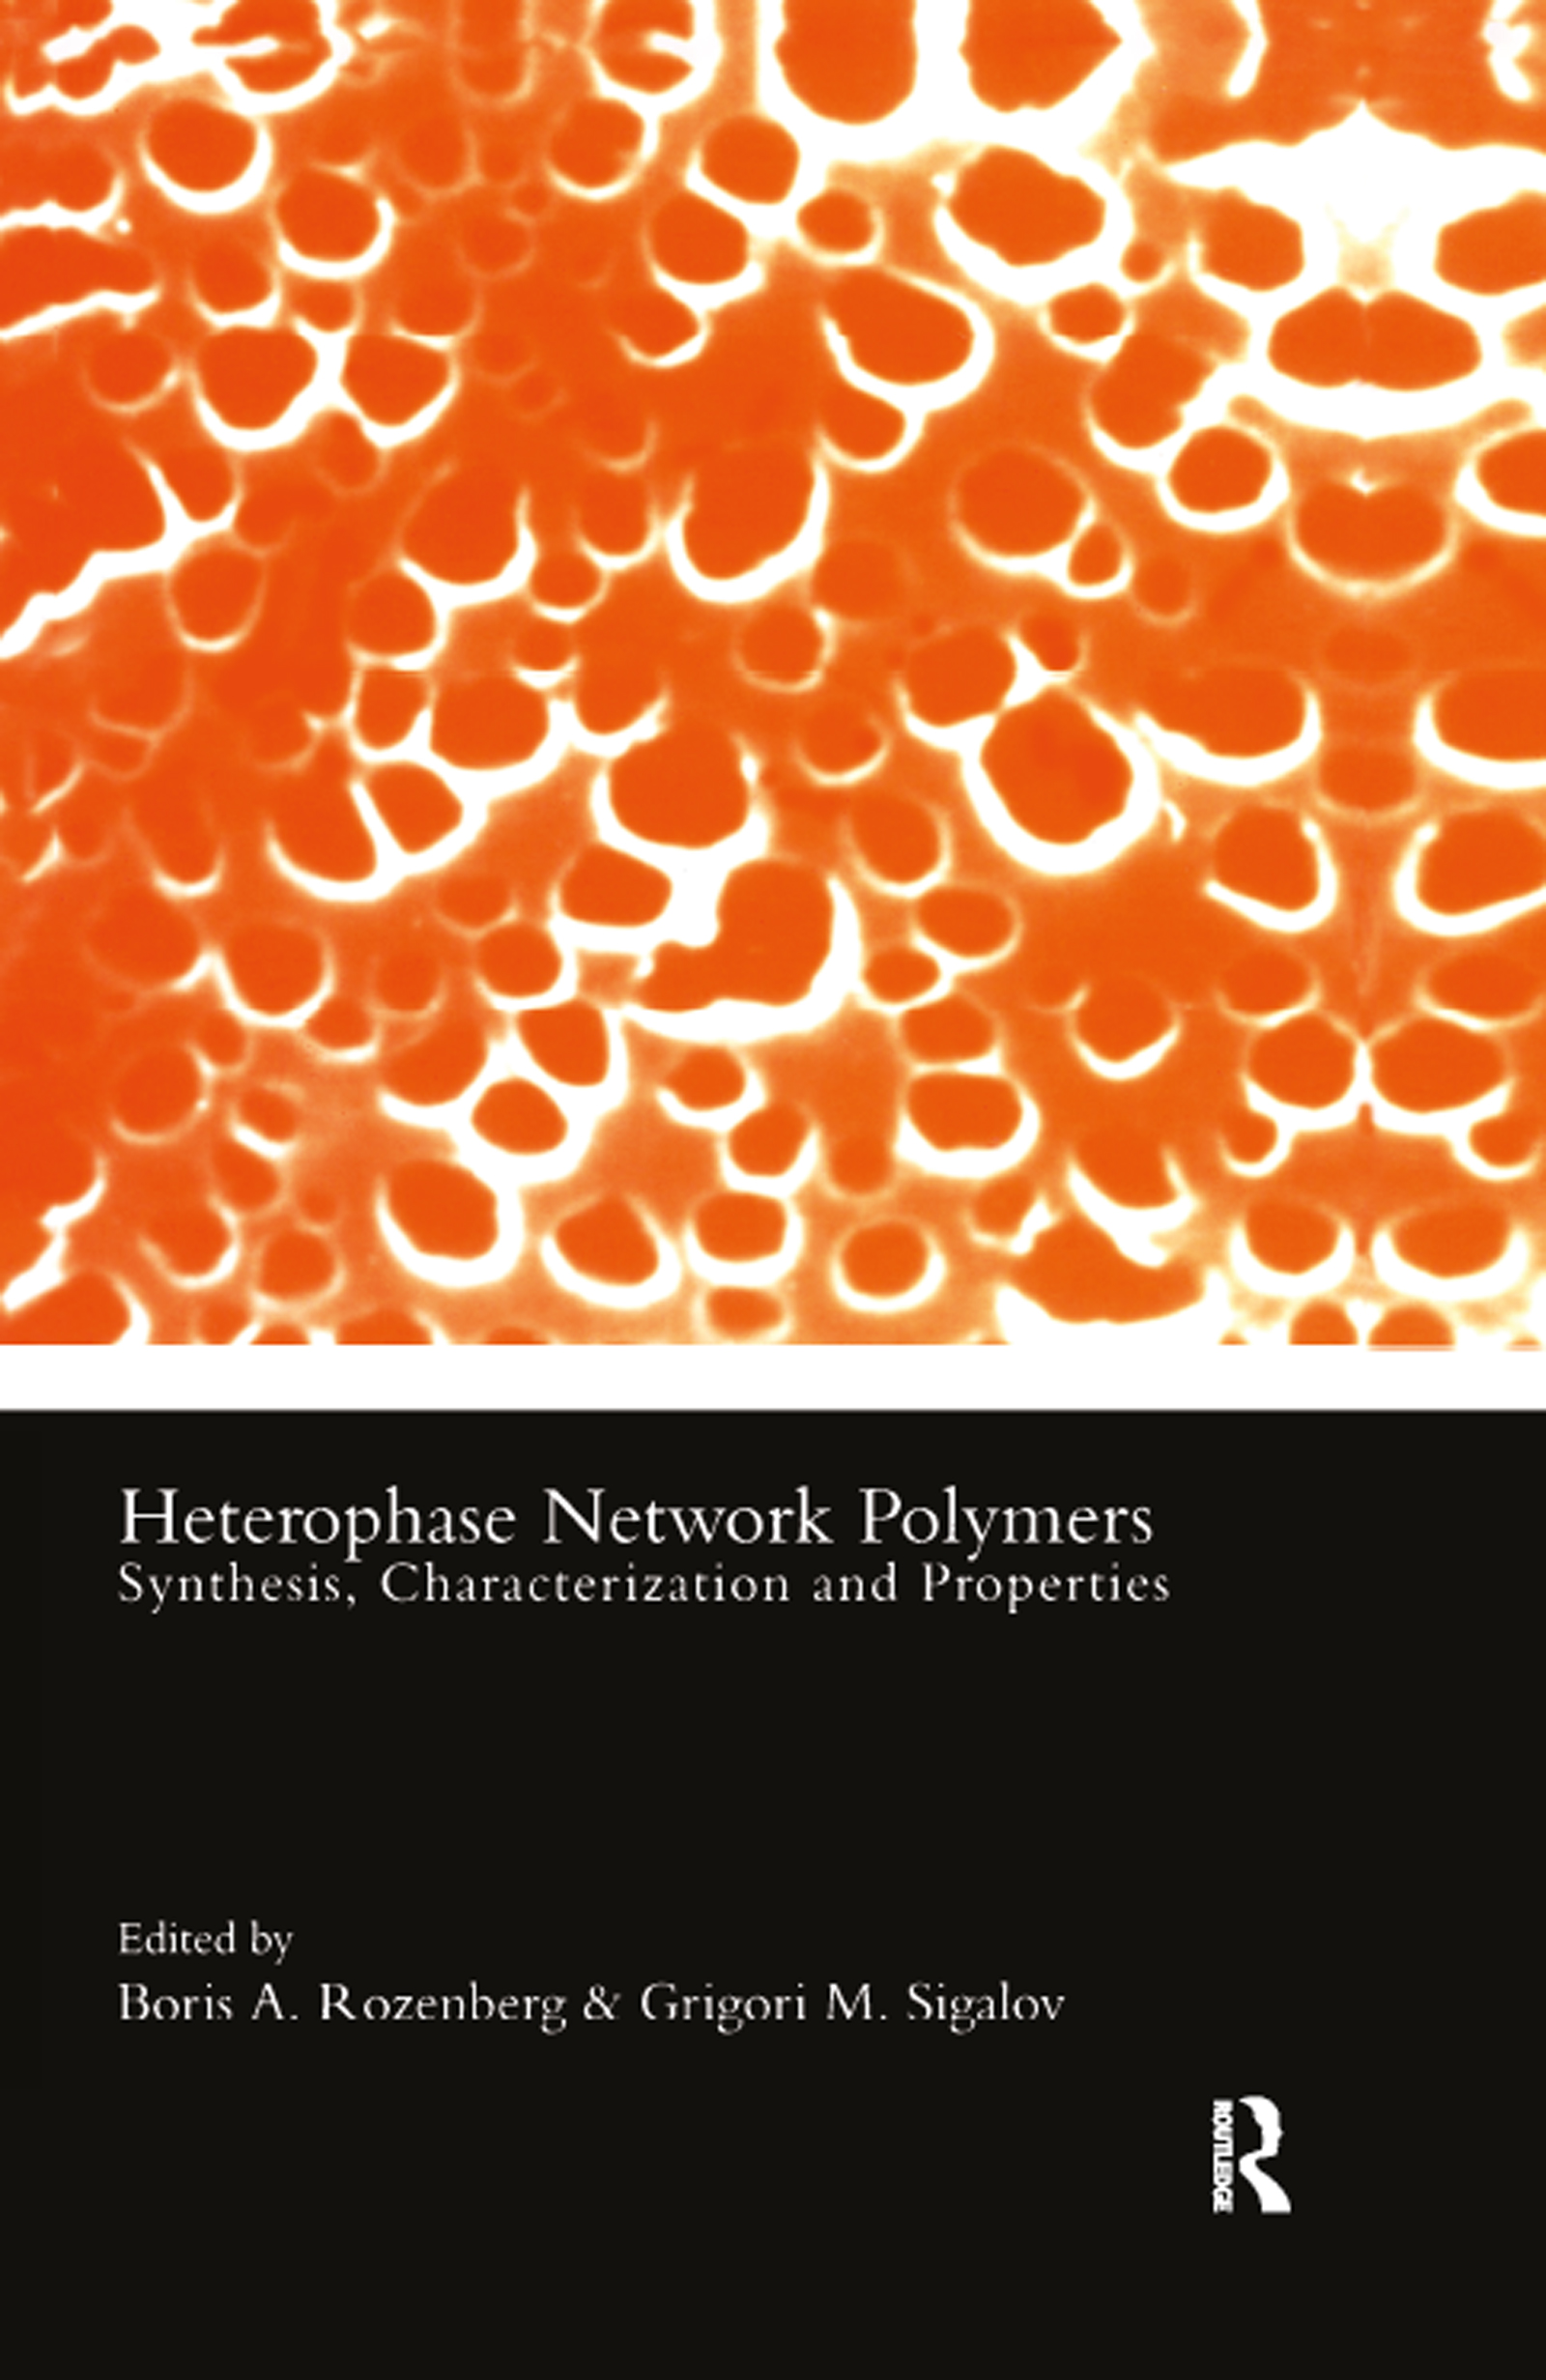 Heterophase Network Polymers